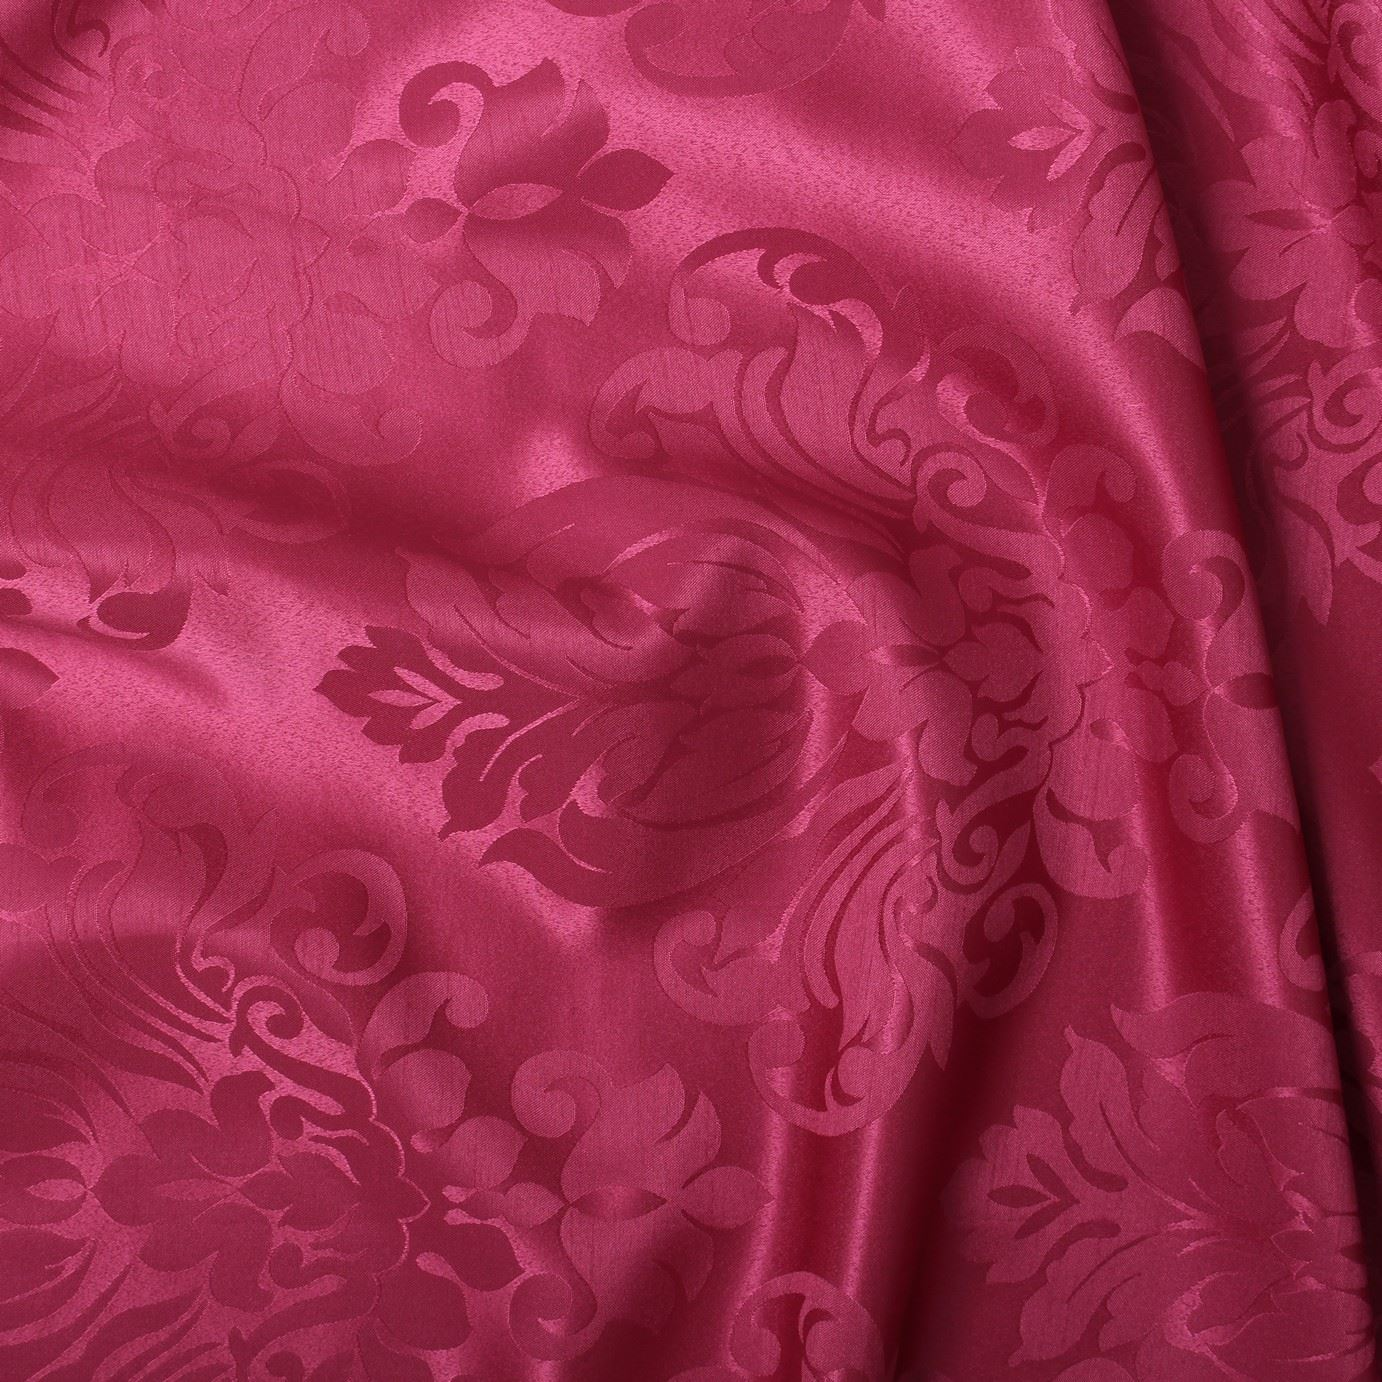 thumbnail 30 - FLORAL DAMASK FAUX SILK JACQUARD CURTAIN UPHOLSTERY FABRIC MATERIAL 12 COLOURS